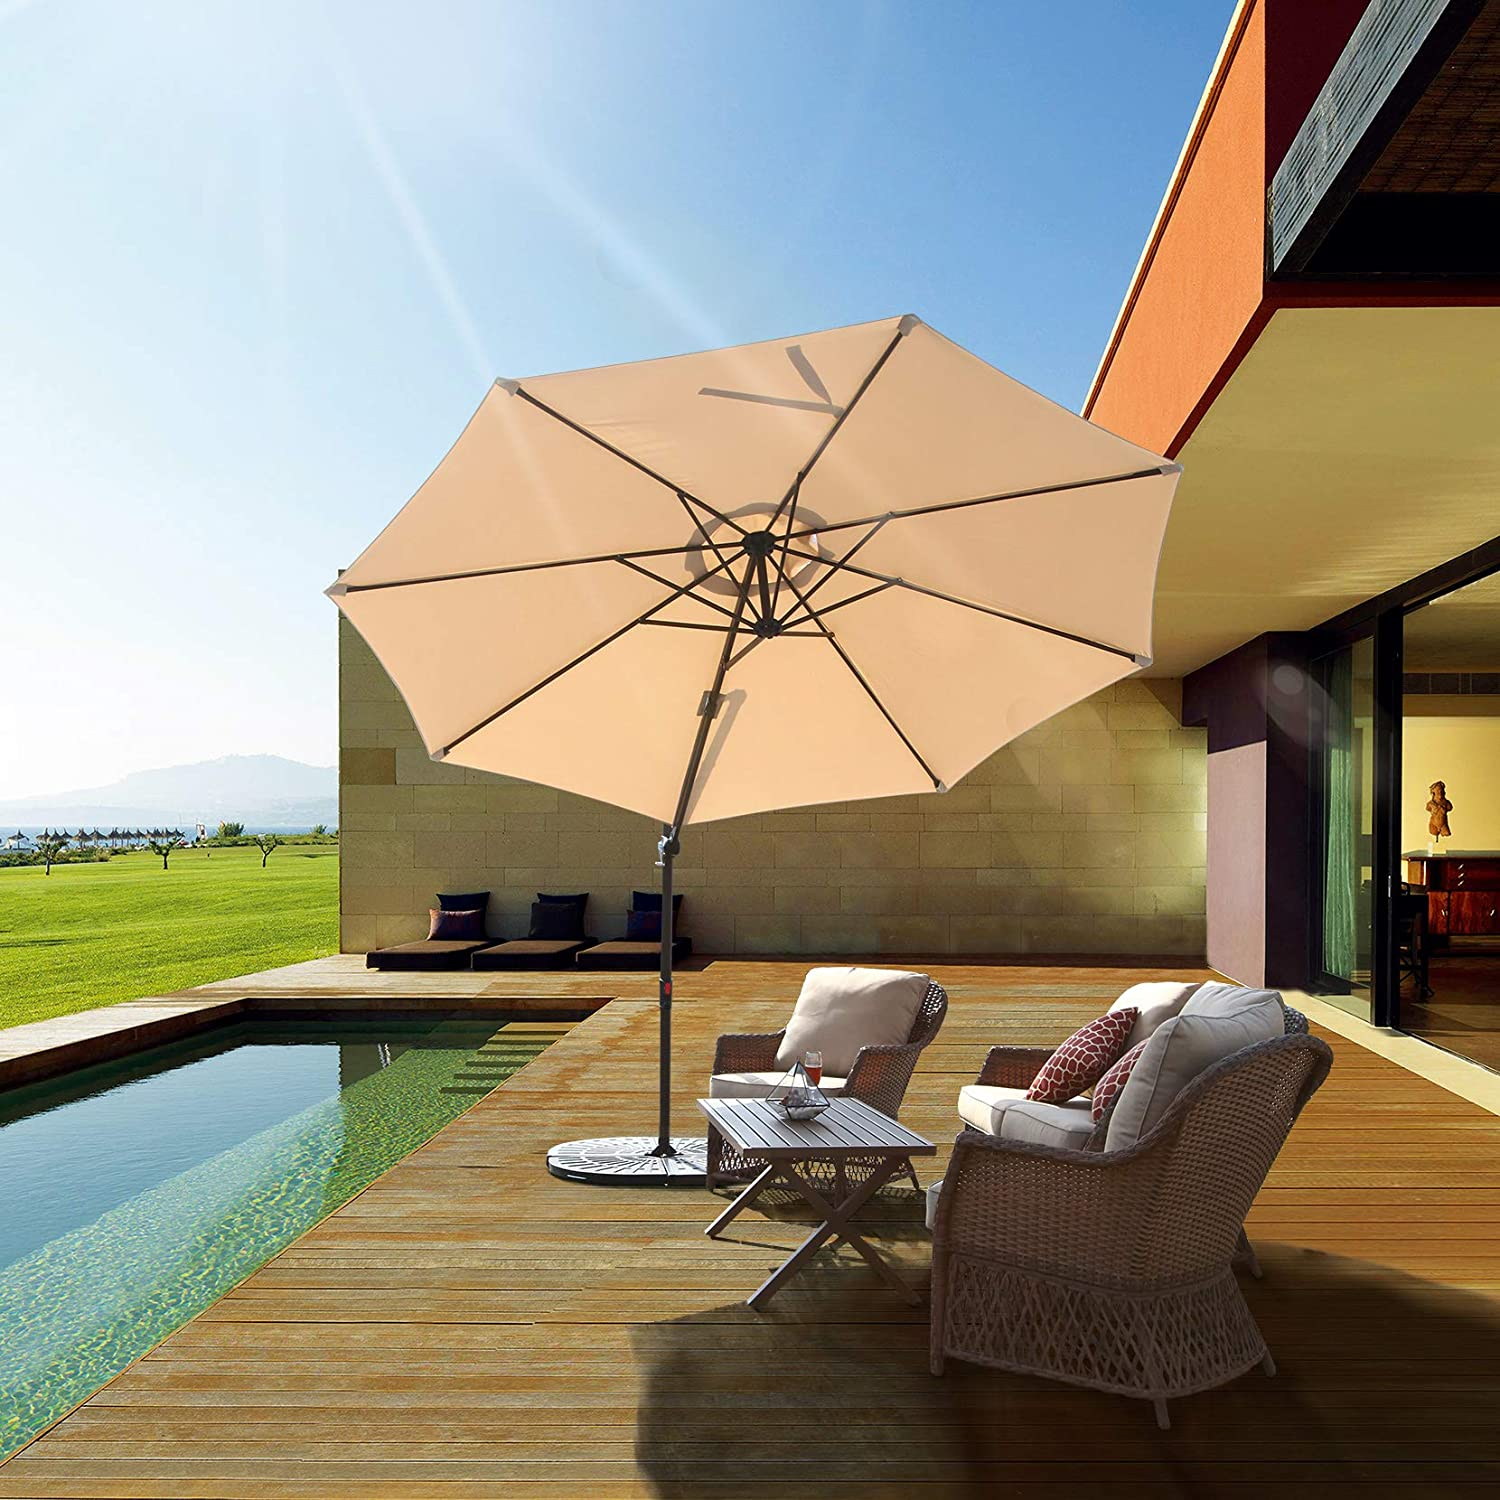 Grand patio 10 FT Aluminum Offset Umbrella, UV Protected Patio Cantilever Umbrella with Tilt and 360 Rotation, Champagne